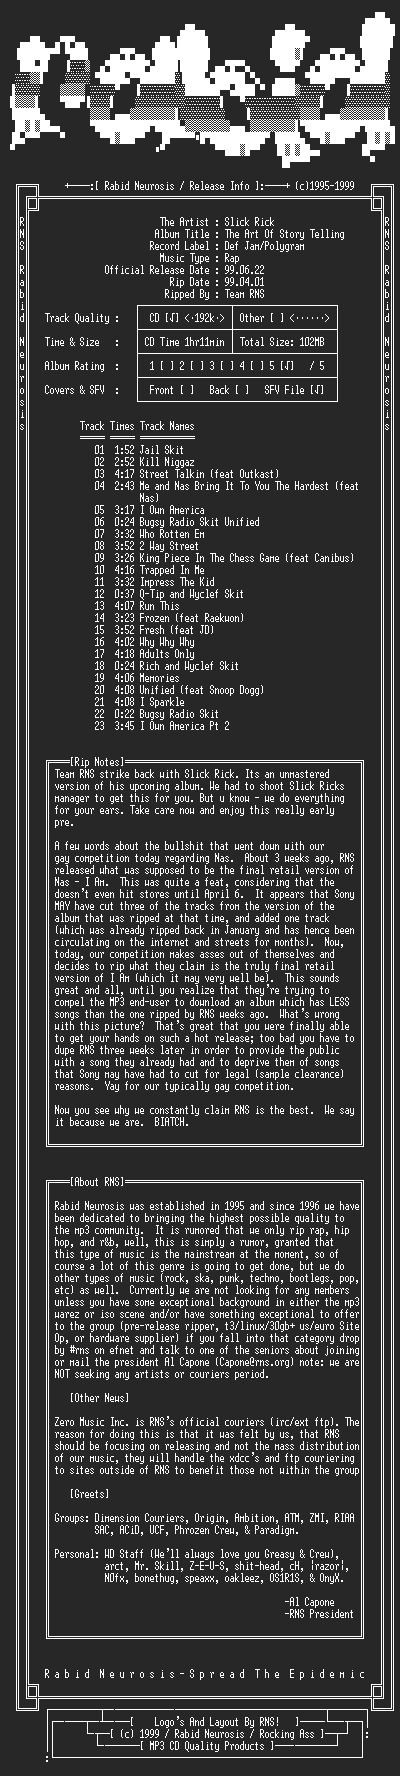 NFO file for Slick_Rick-The_Art_Of_Story_Telling-1999-RNS